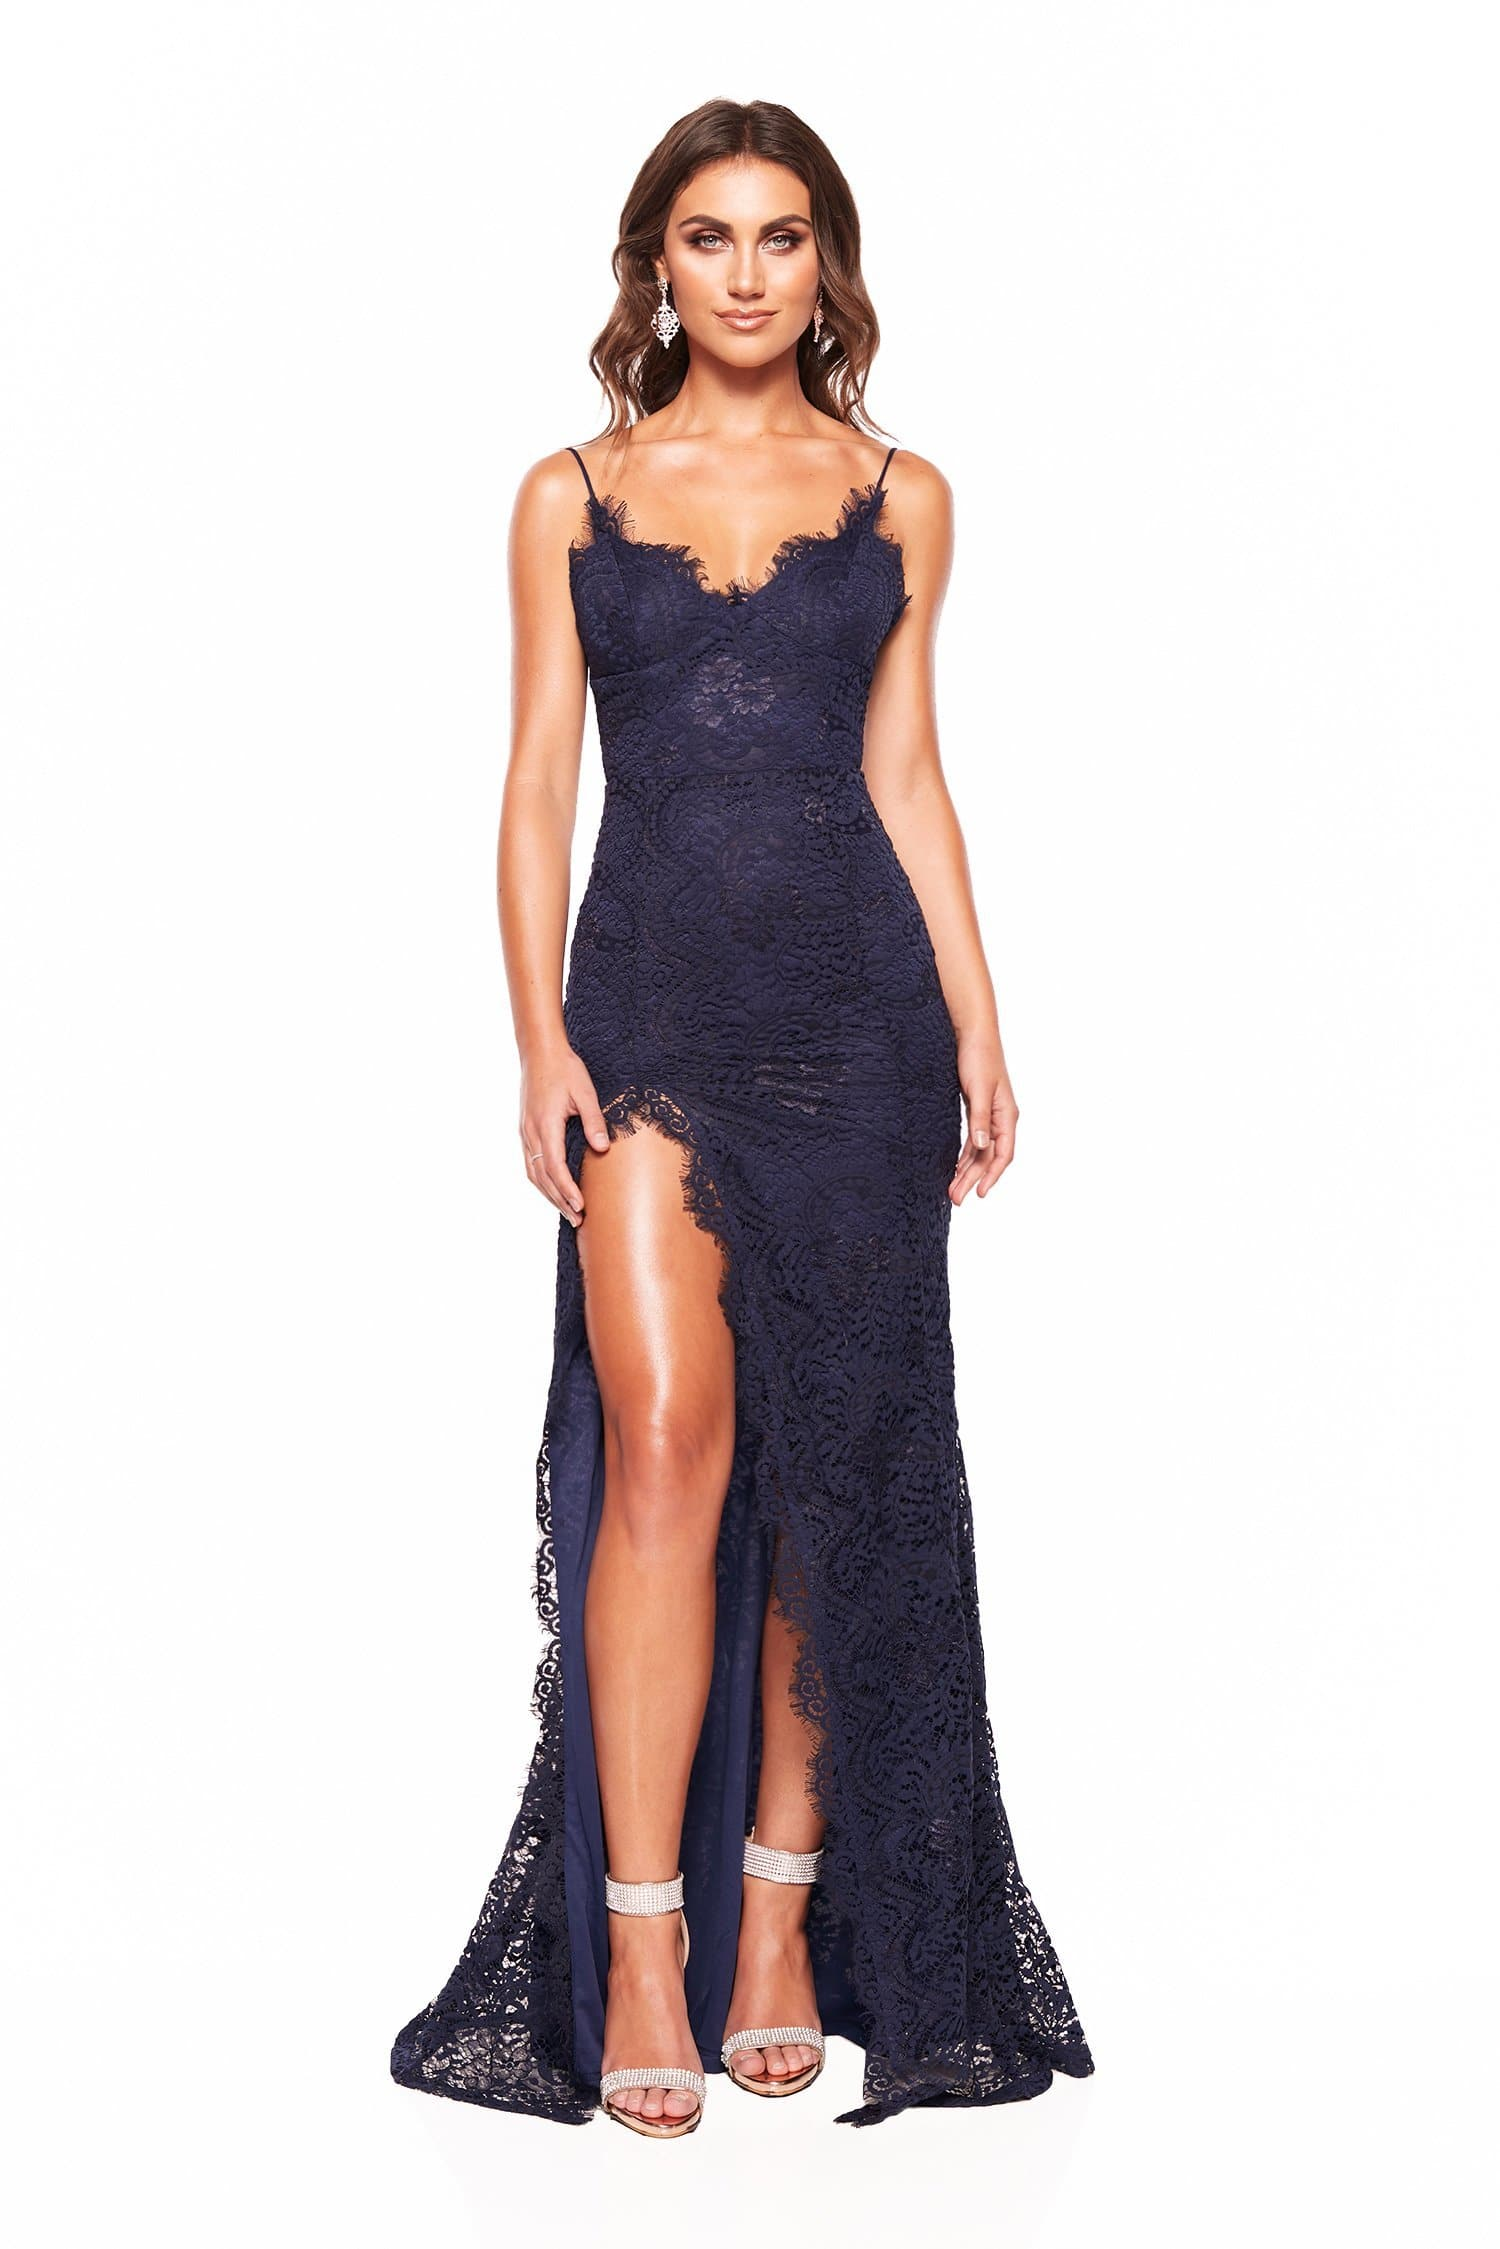 Layali - Sleeveless Navy Lace Gown with Side Split, V Neck & Open Back